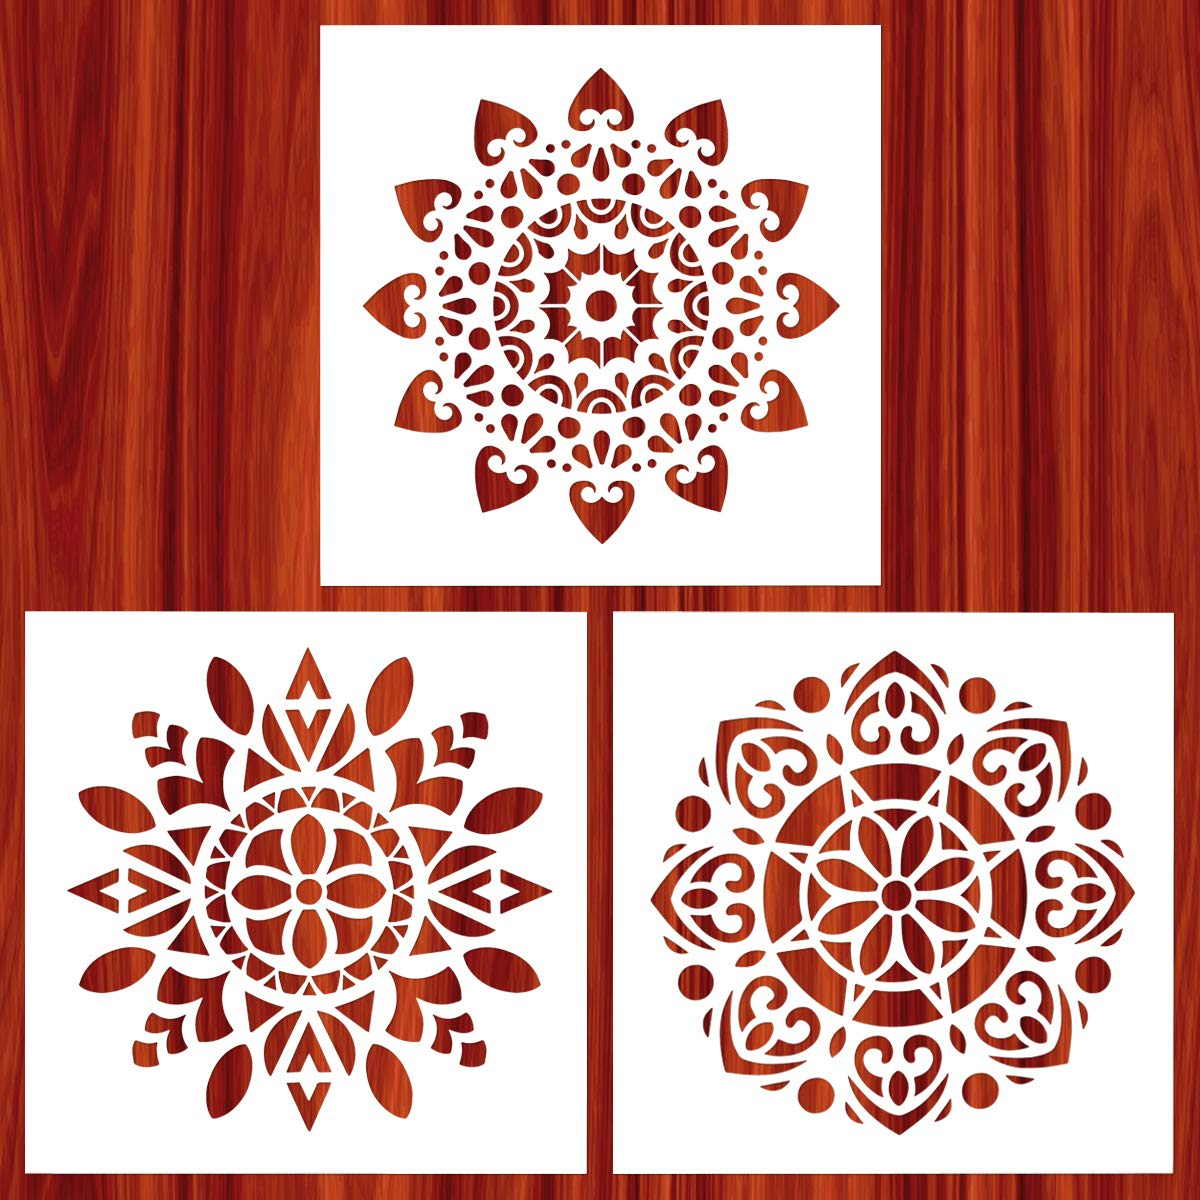 AK KYC Stencils Mandala Painting Stencil Stencils for Painting (12x12 inch Large Size) on Wood Wall Floor Tile Fabric Furniture Decor Mandala Dotting Tools Reusable, Style 1 by AK KYC